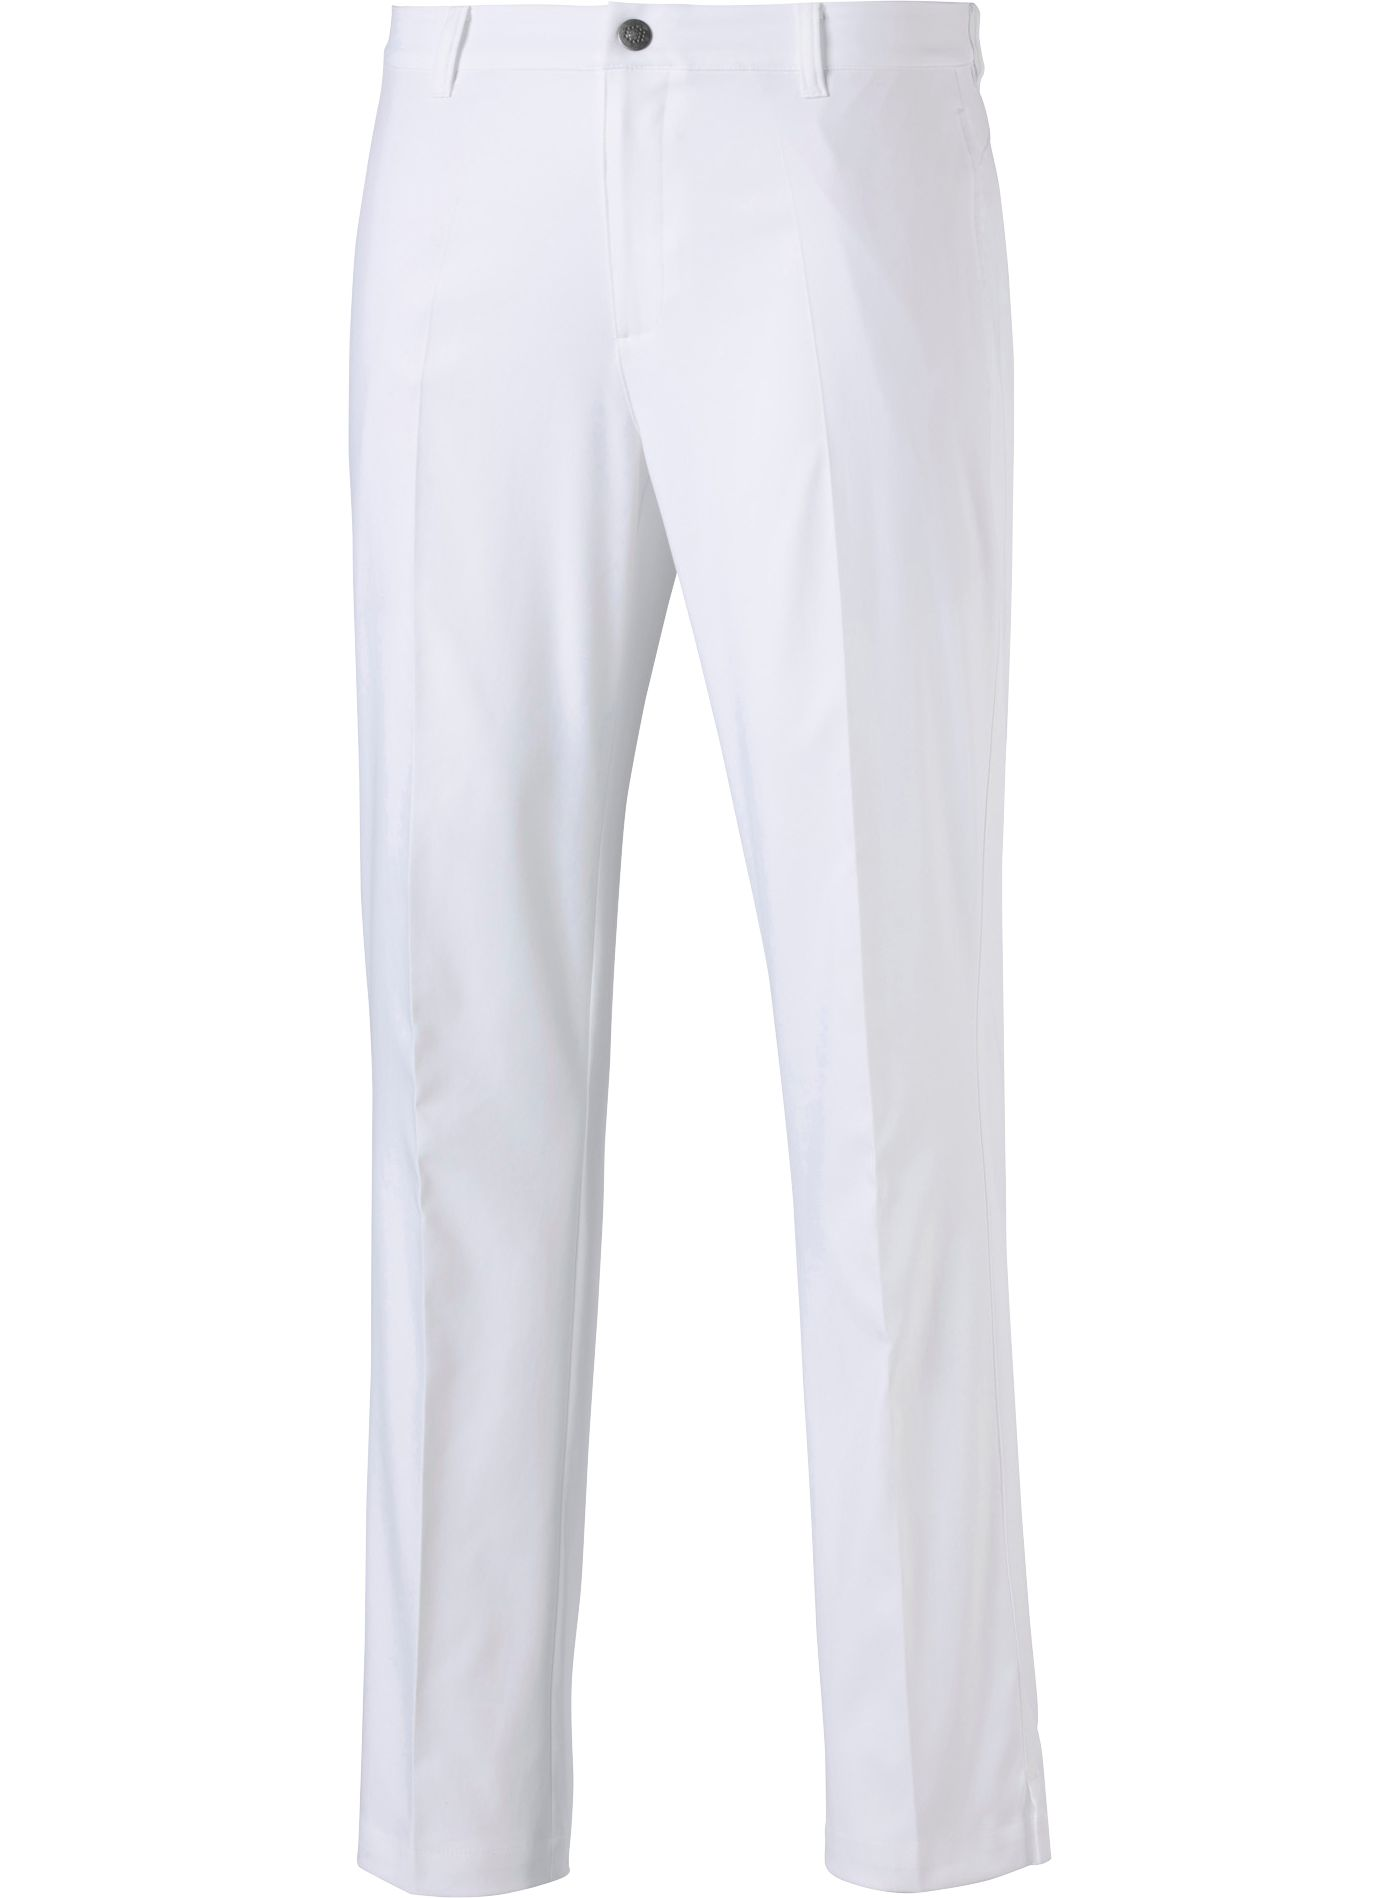 PUMA Men's Jackpot Golf Pants